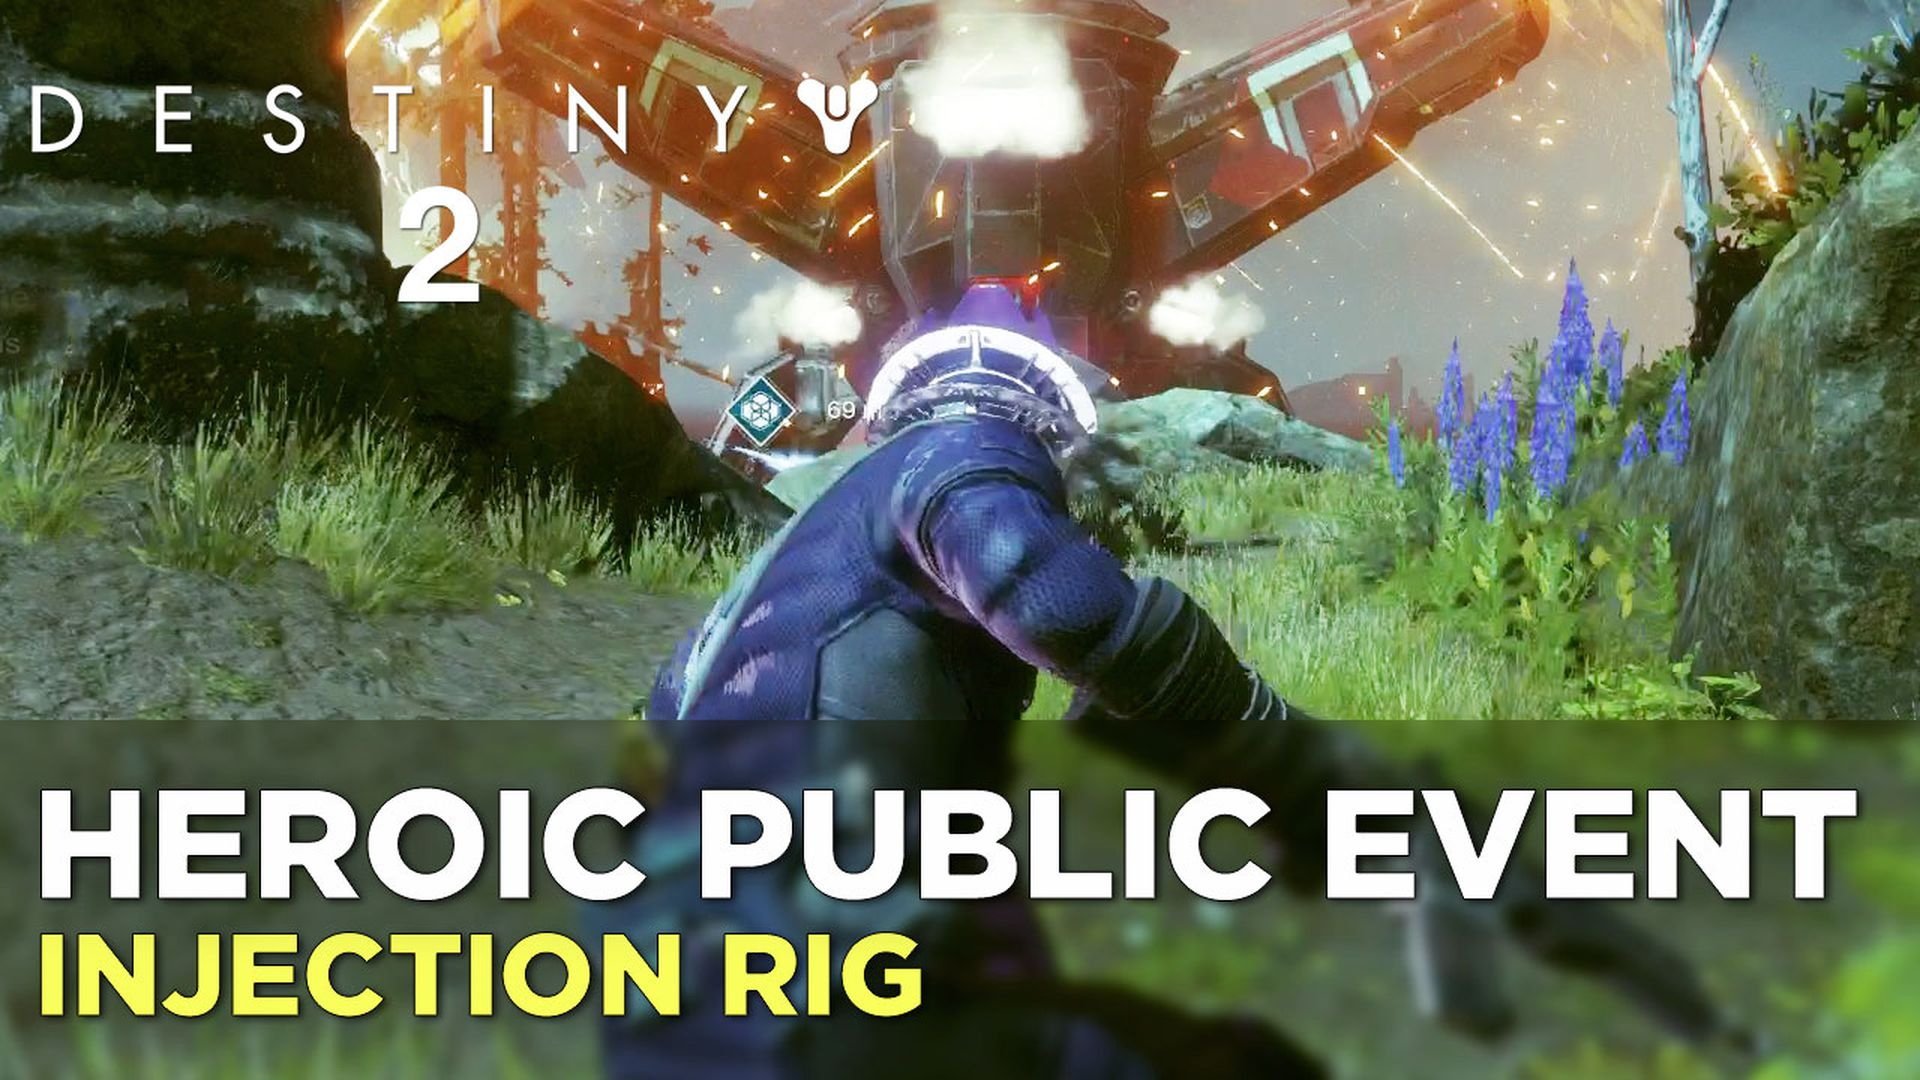 Destiny 2 guide: How to trigger Heroic Public Events - Polygon